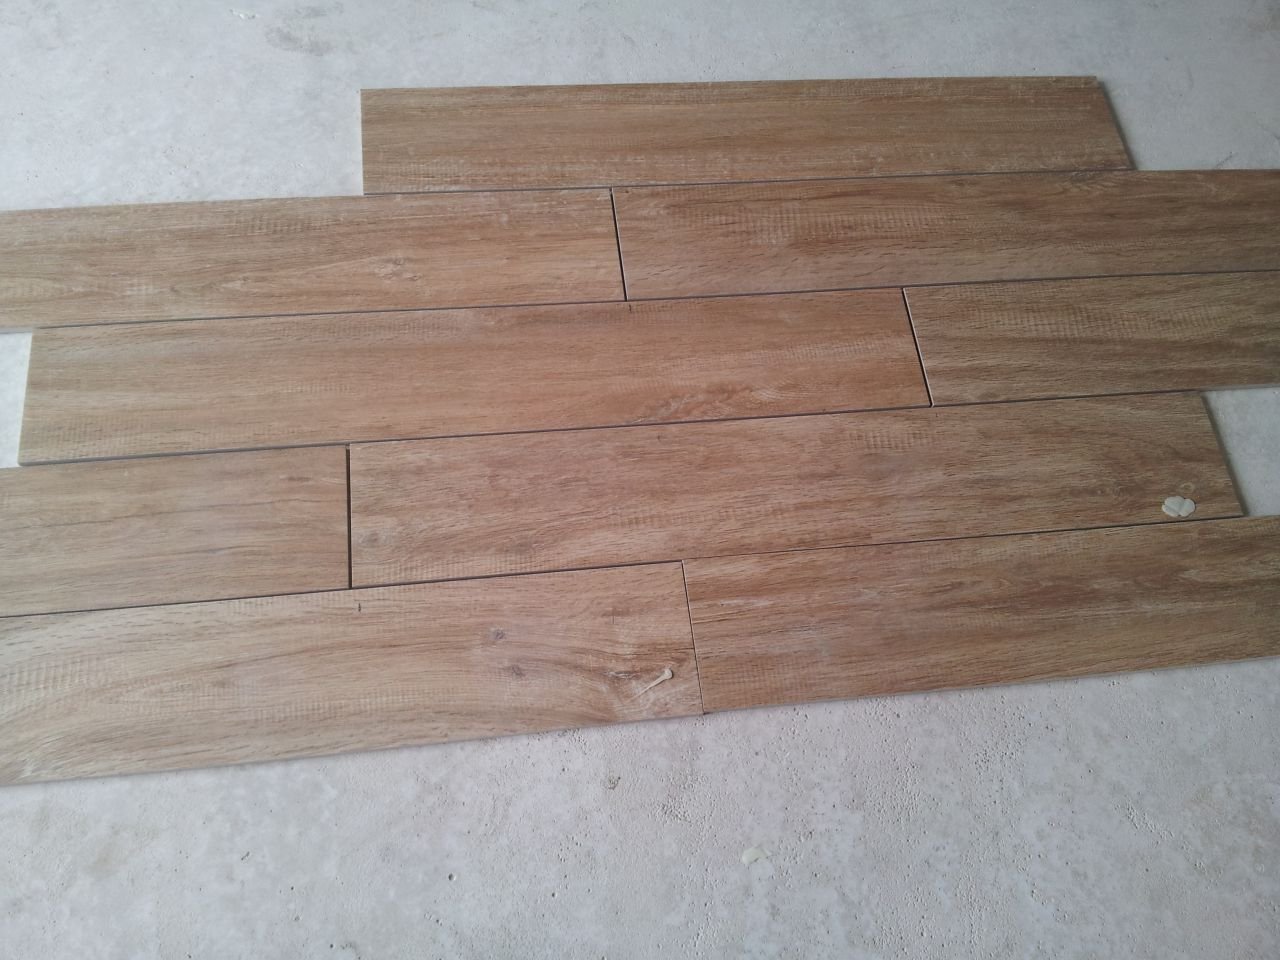 Poser carrelage sur parquet for Pose carrelage sur carrelage